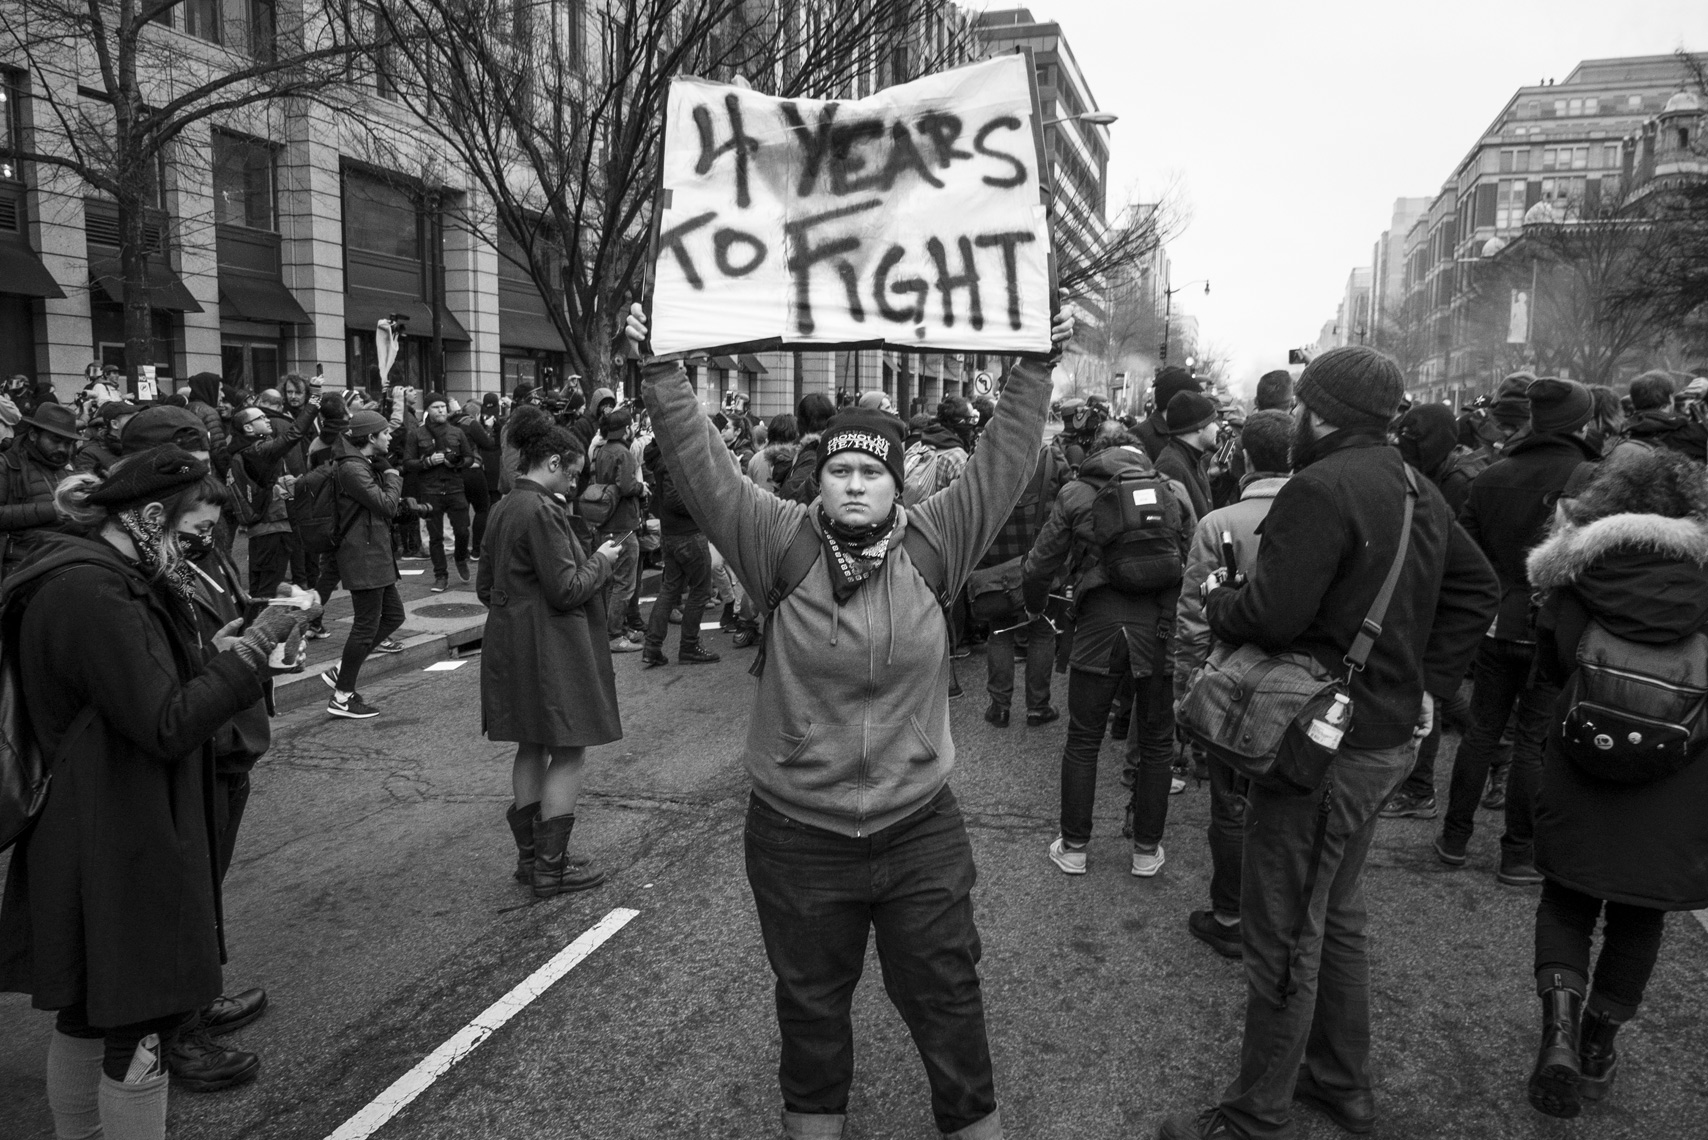 GM_Washington-Inauguration-Day-Protests012017_1100850